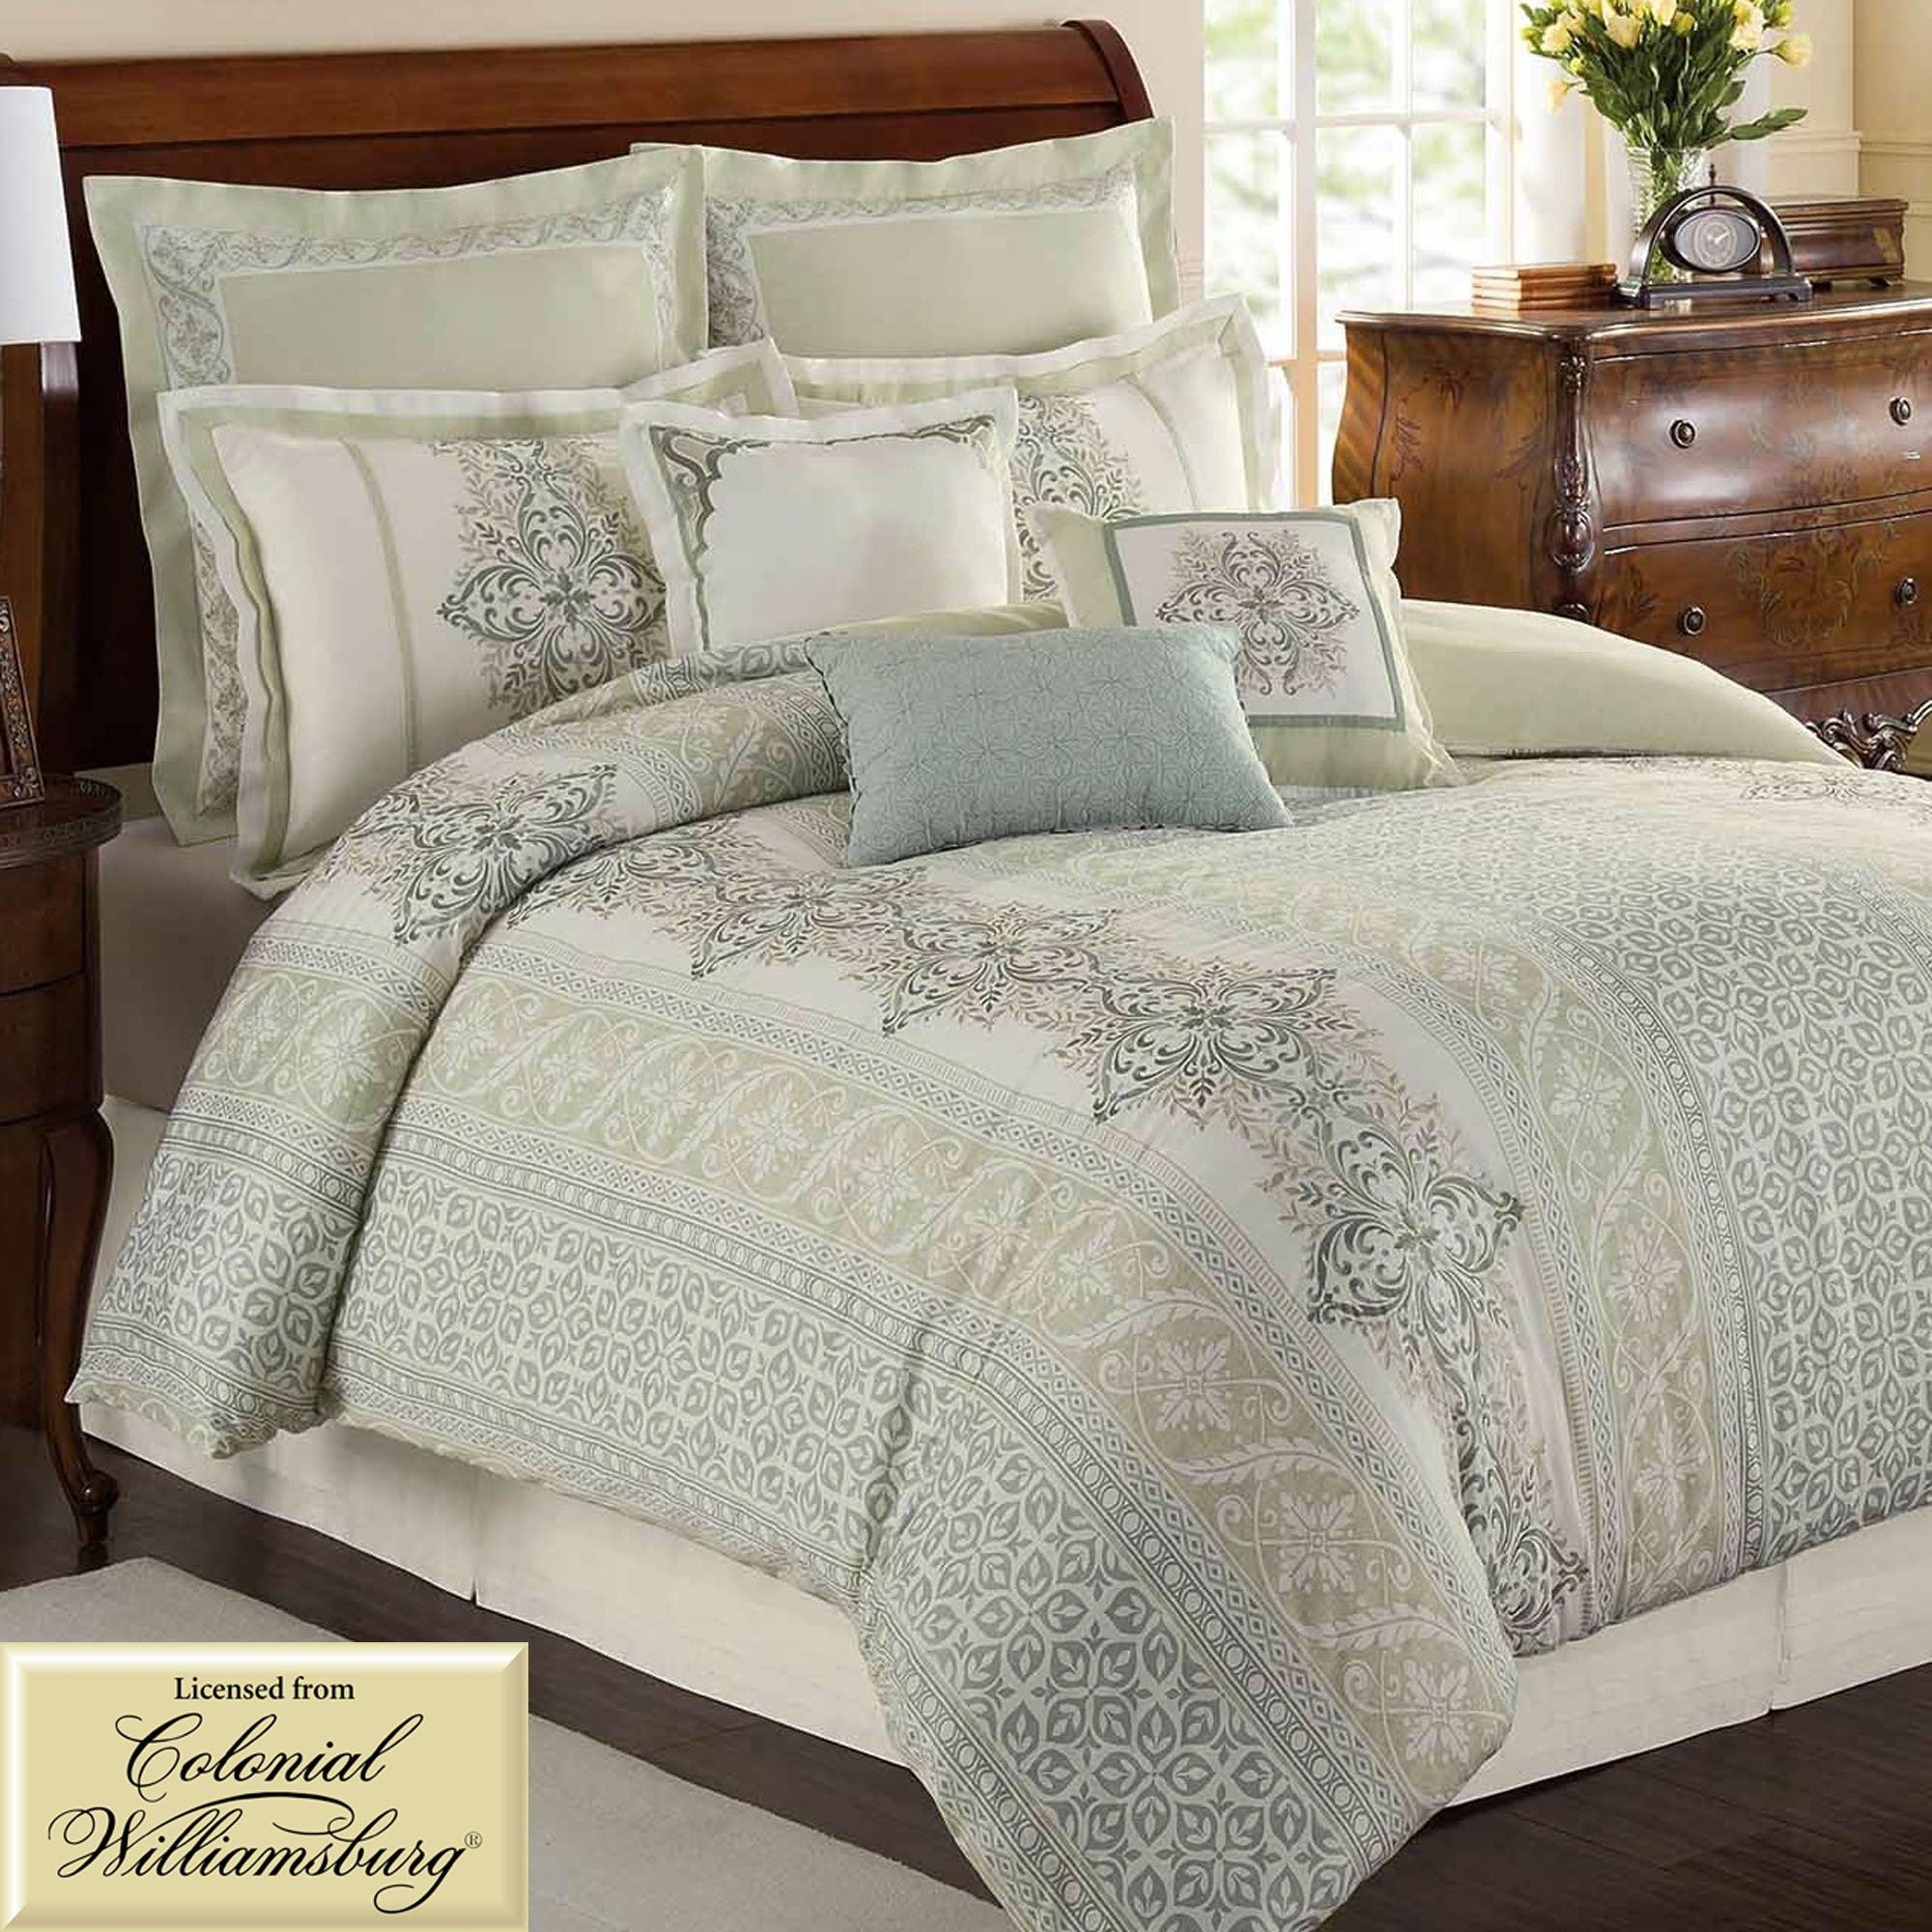 waterford hotel pin set collection bed veranda comforter linens reversible bath beyond